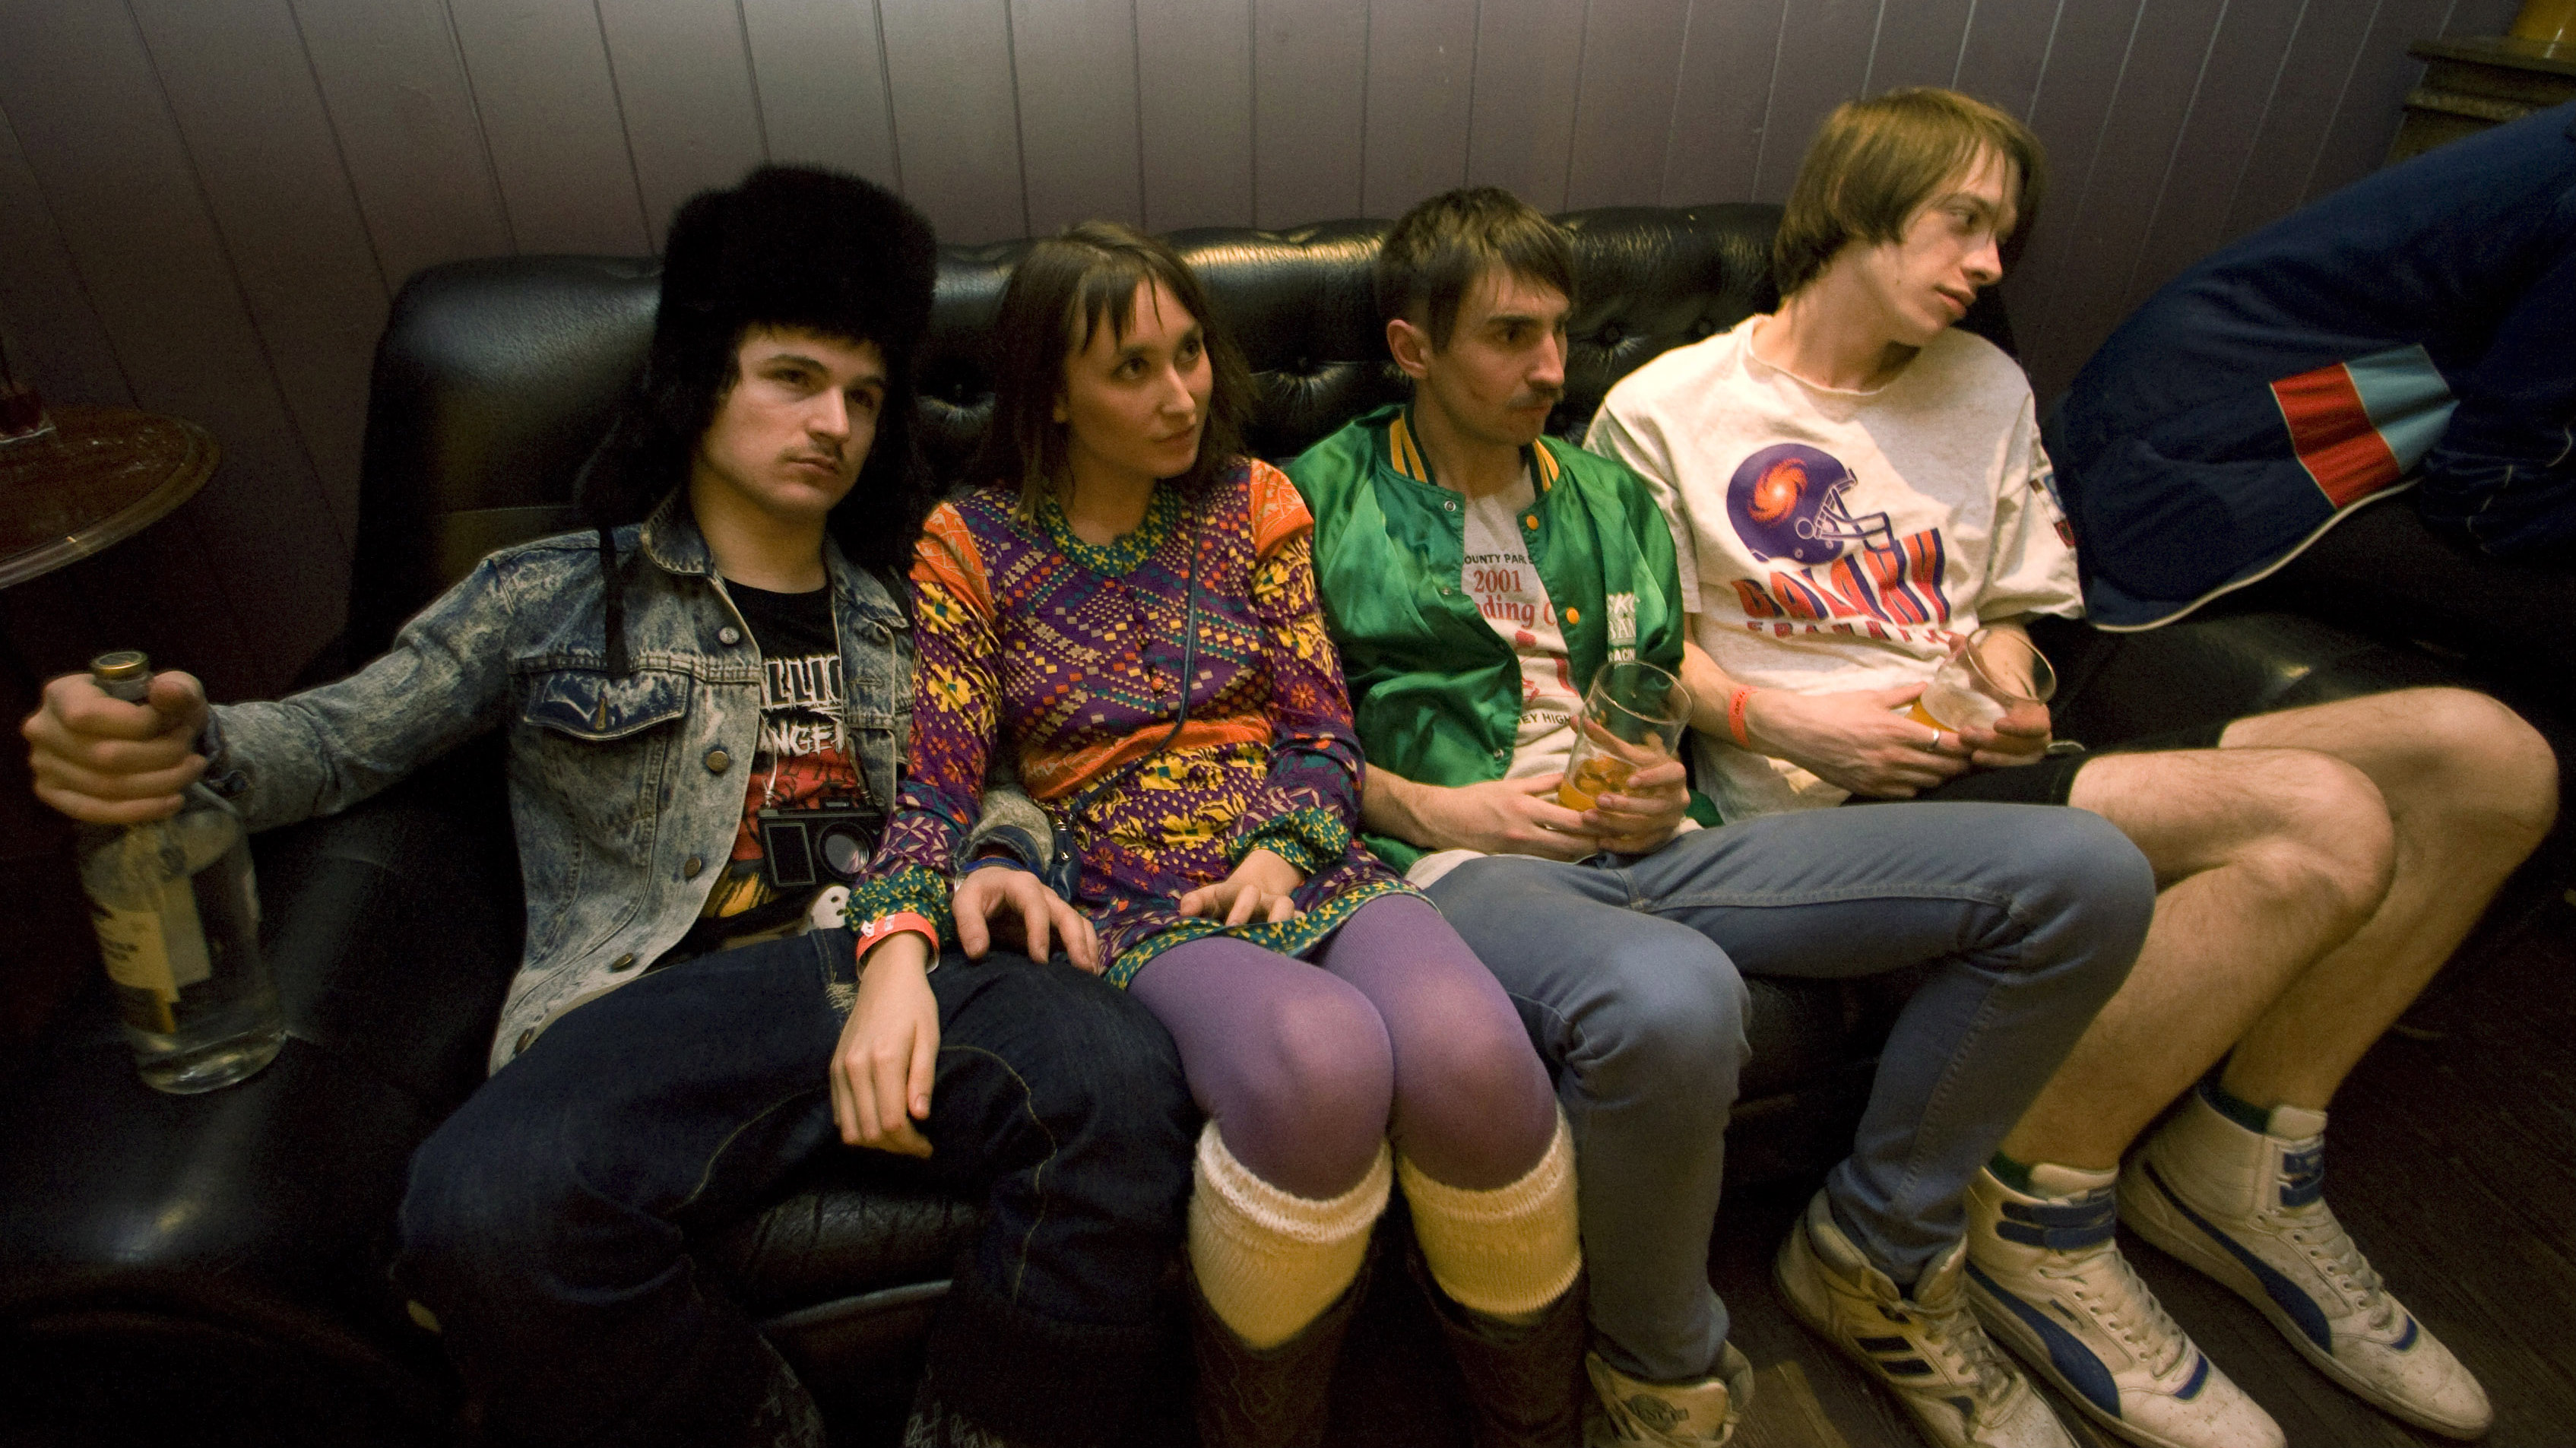 young people on a couch